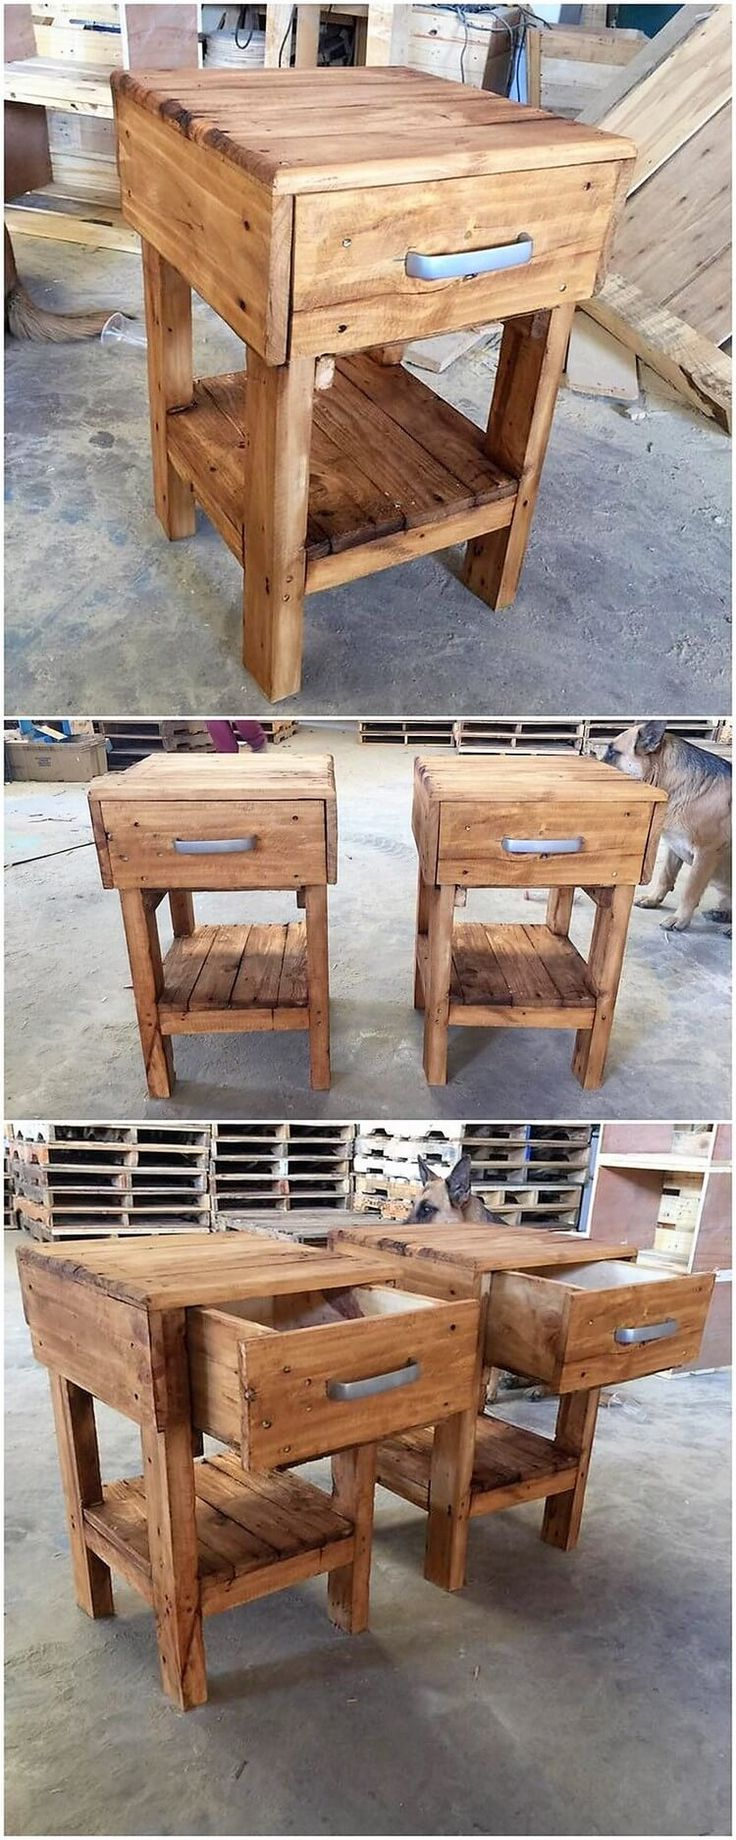 best 25+ wooden pallet furniture ideas on pinterest | wooden